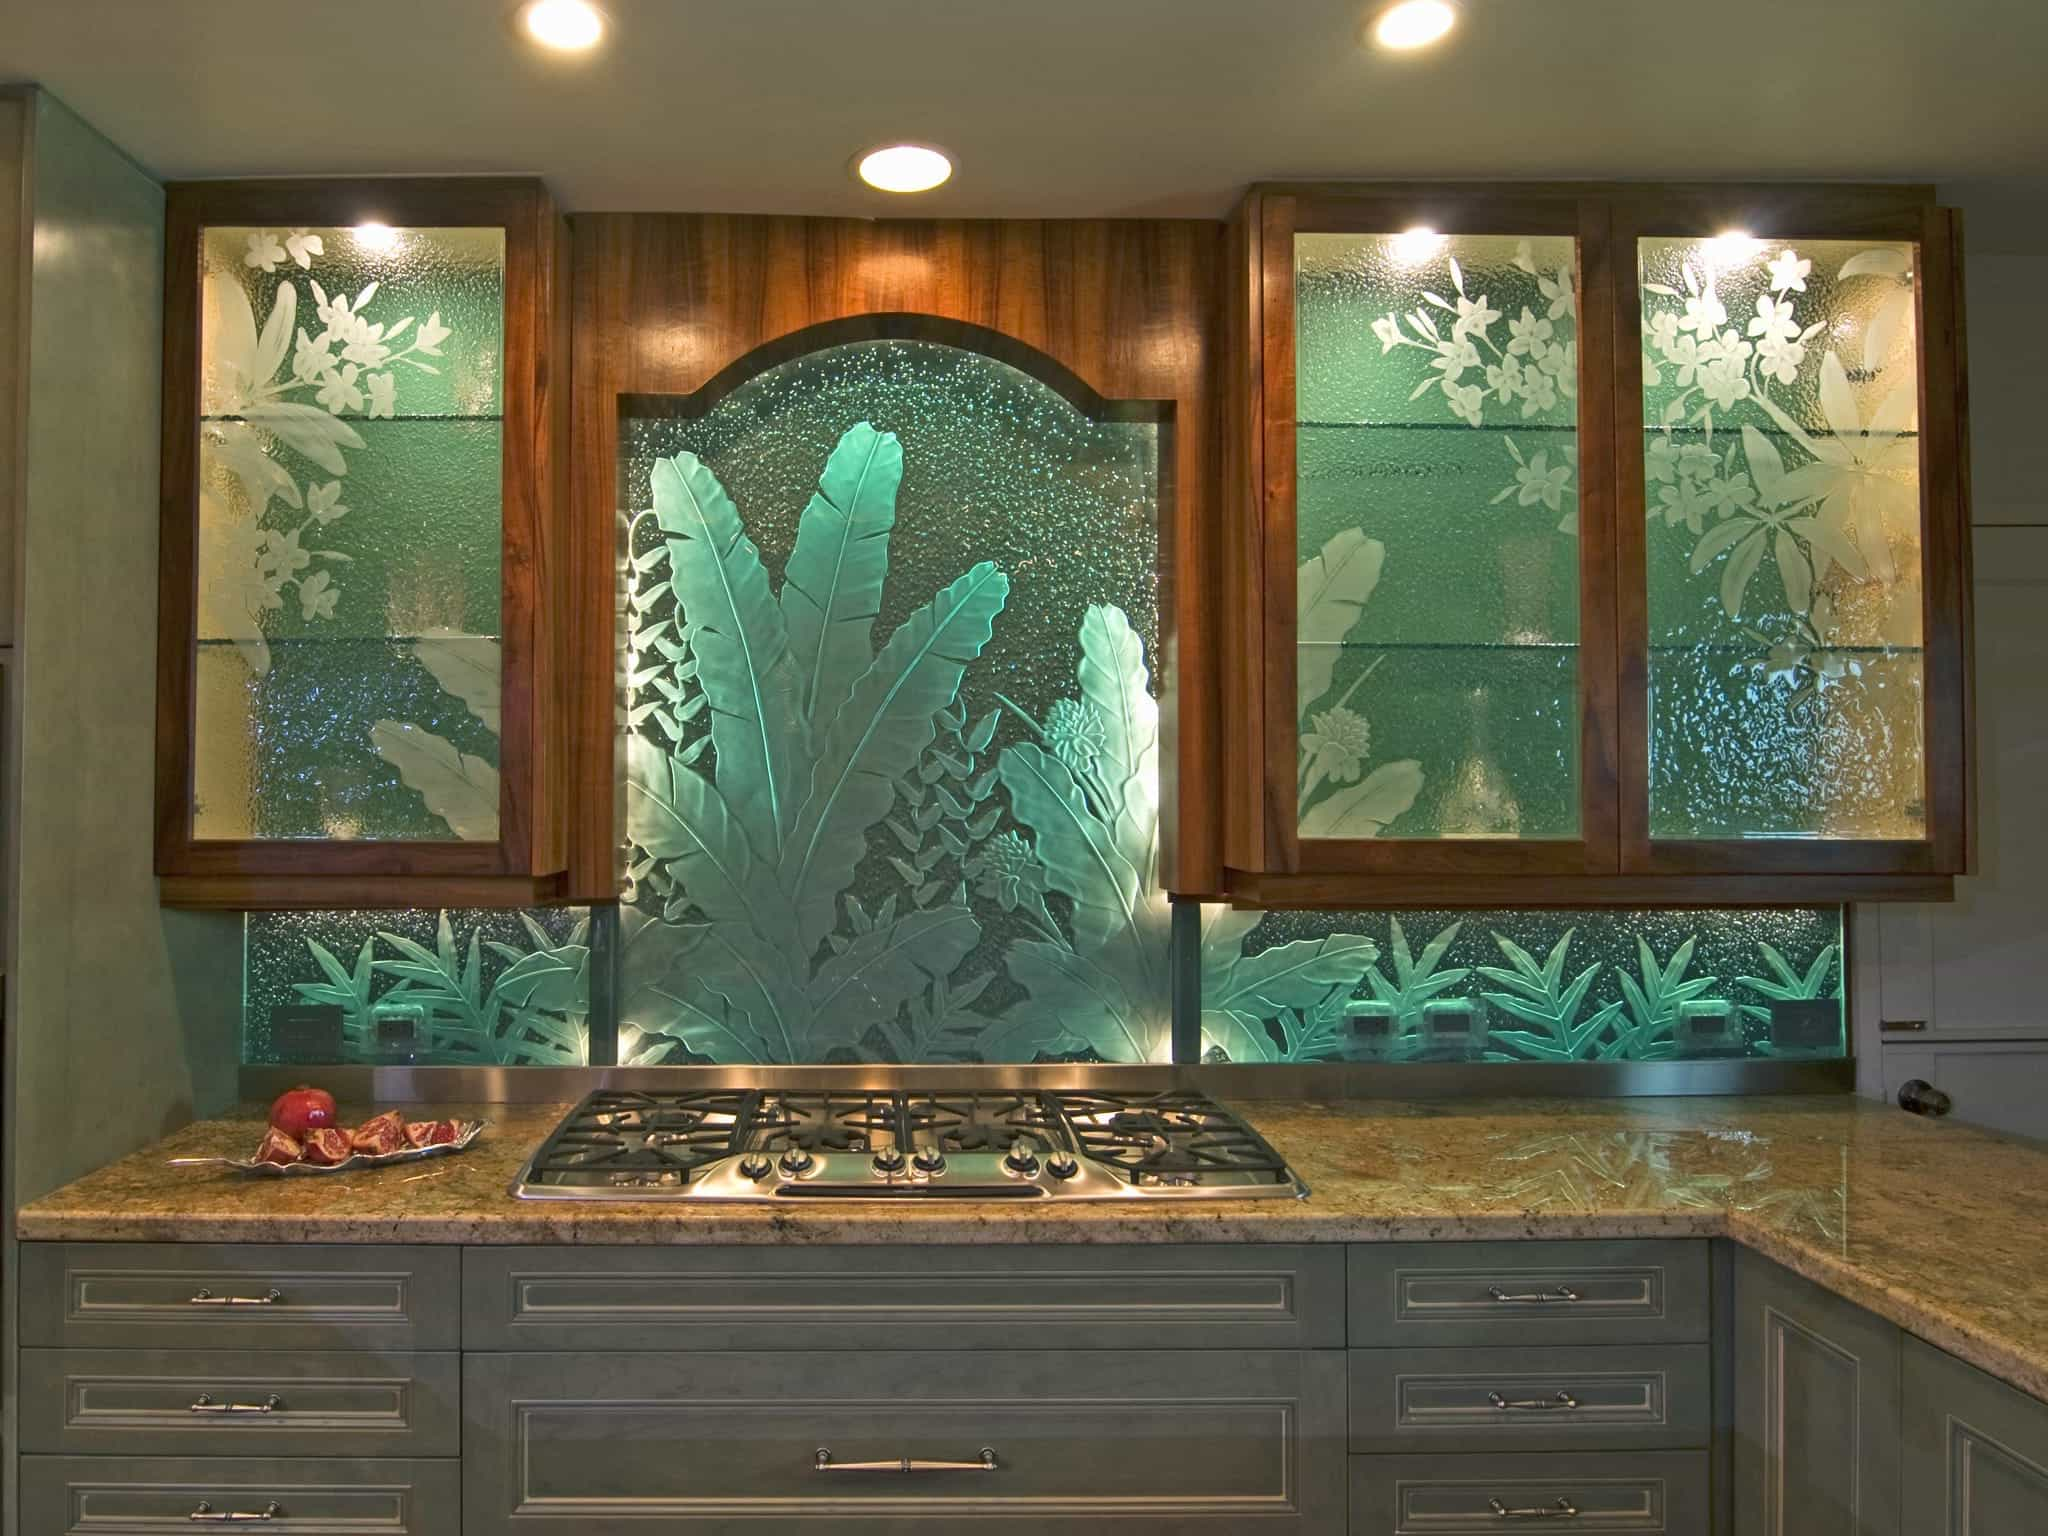 Floral Etched Glass Kitchen Cabinet Doors (Image 6 of 7)